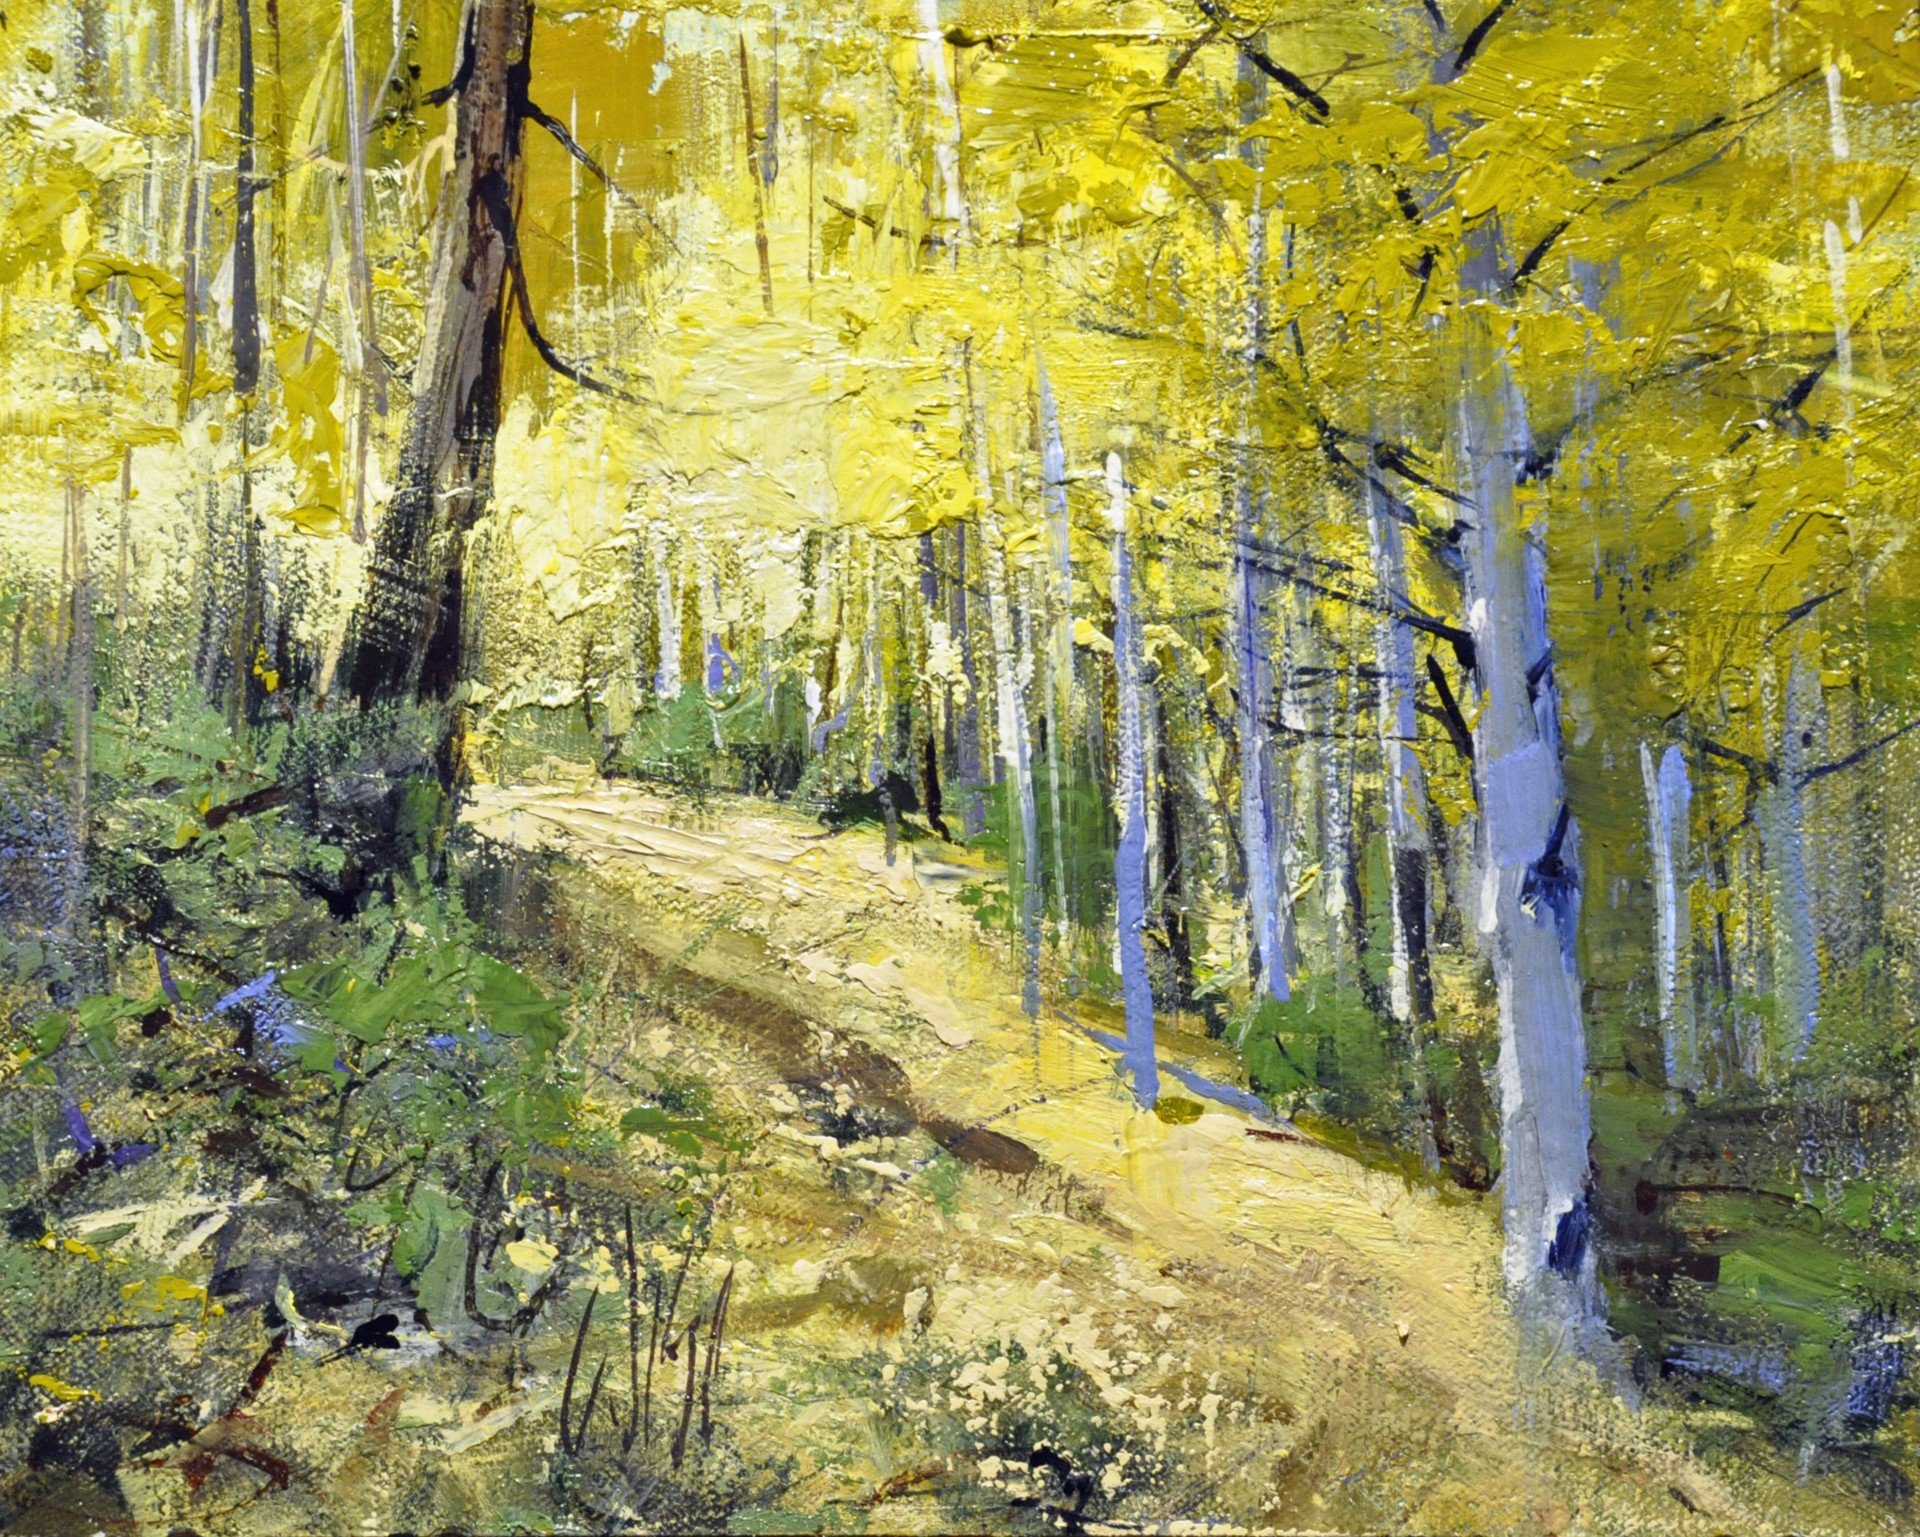 Yellow Woods III by Mike Wise